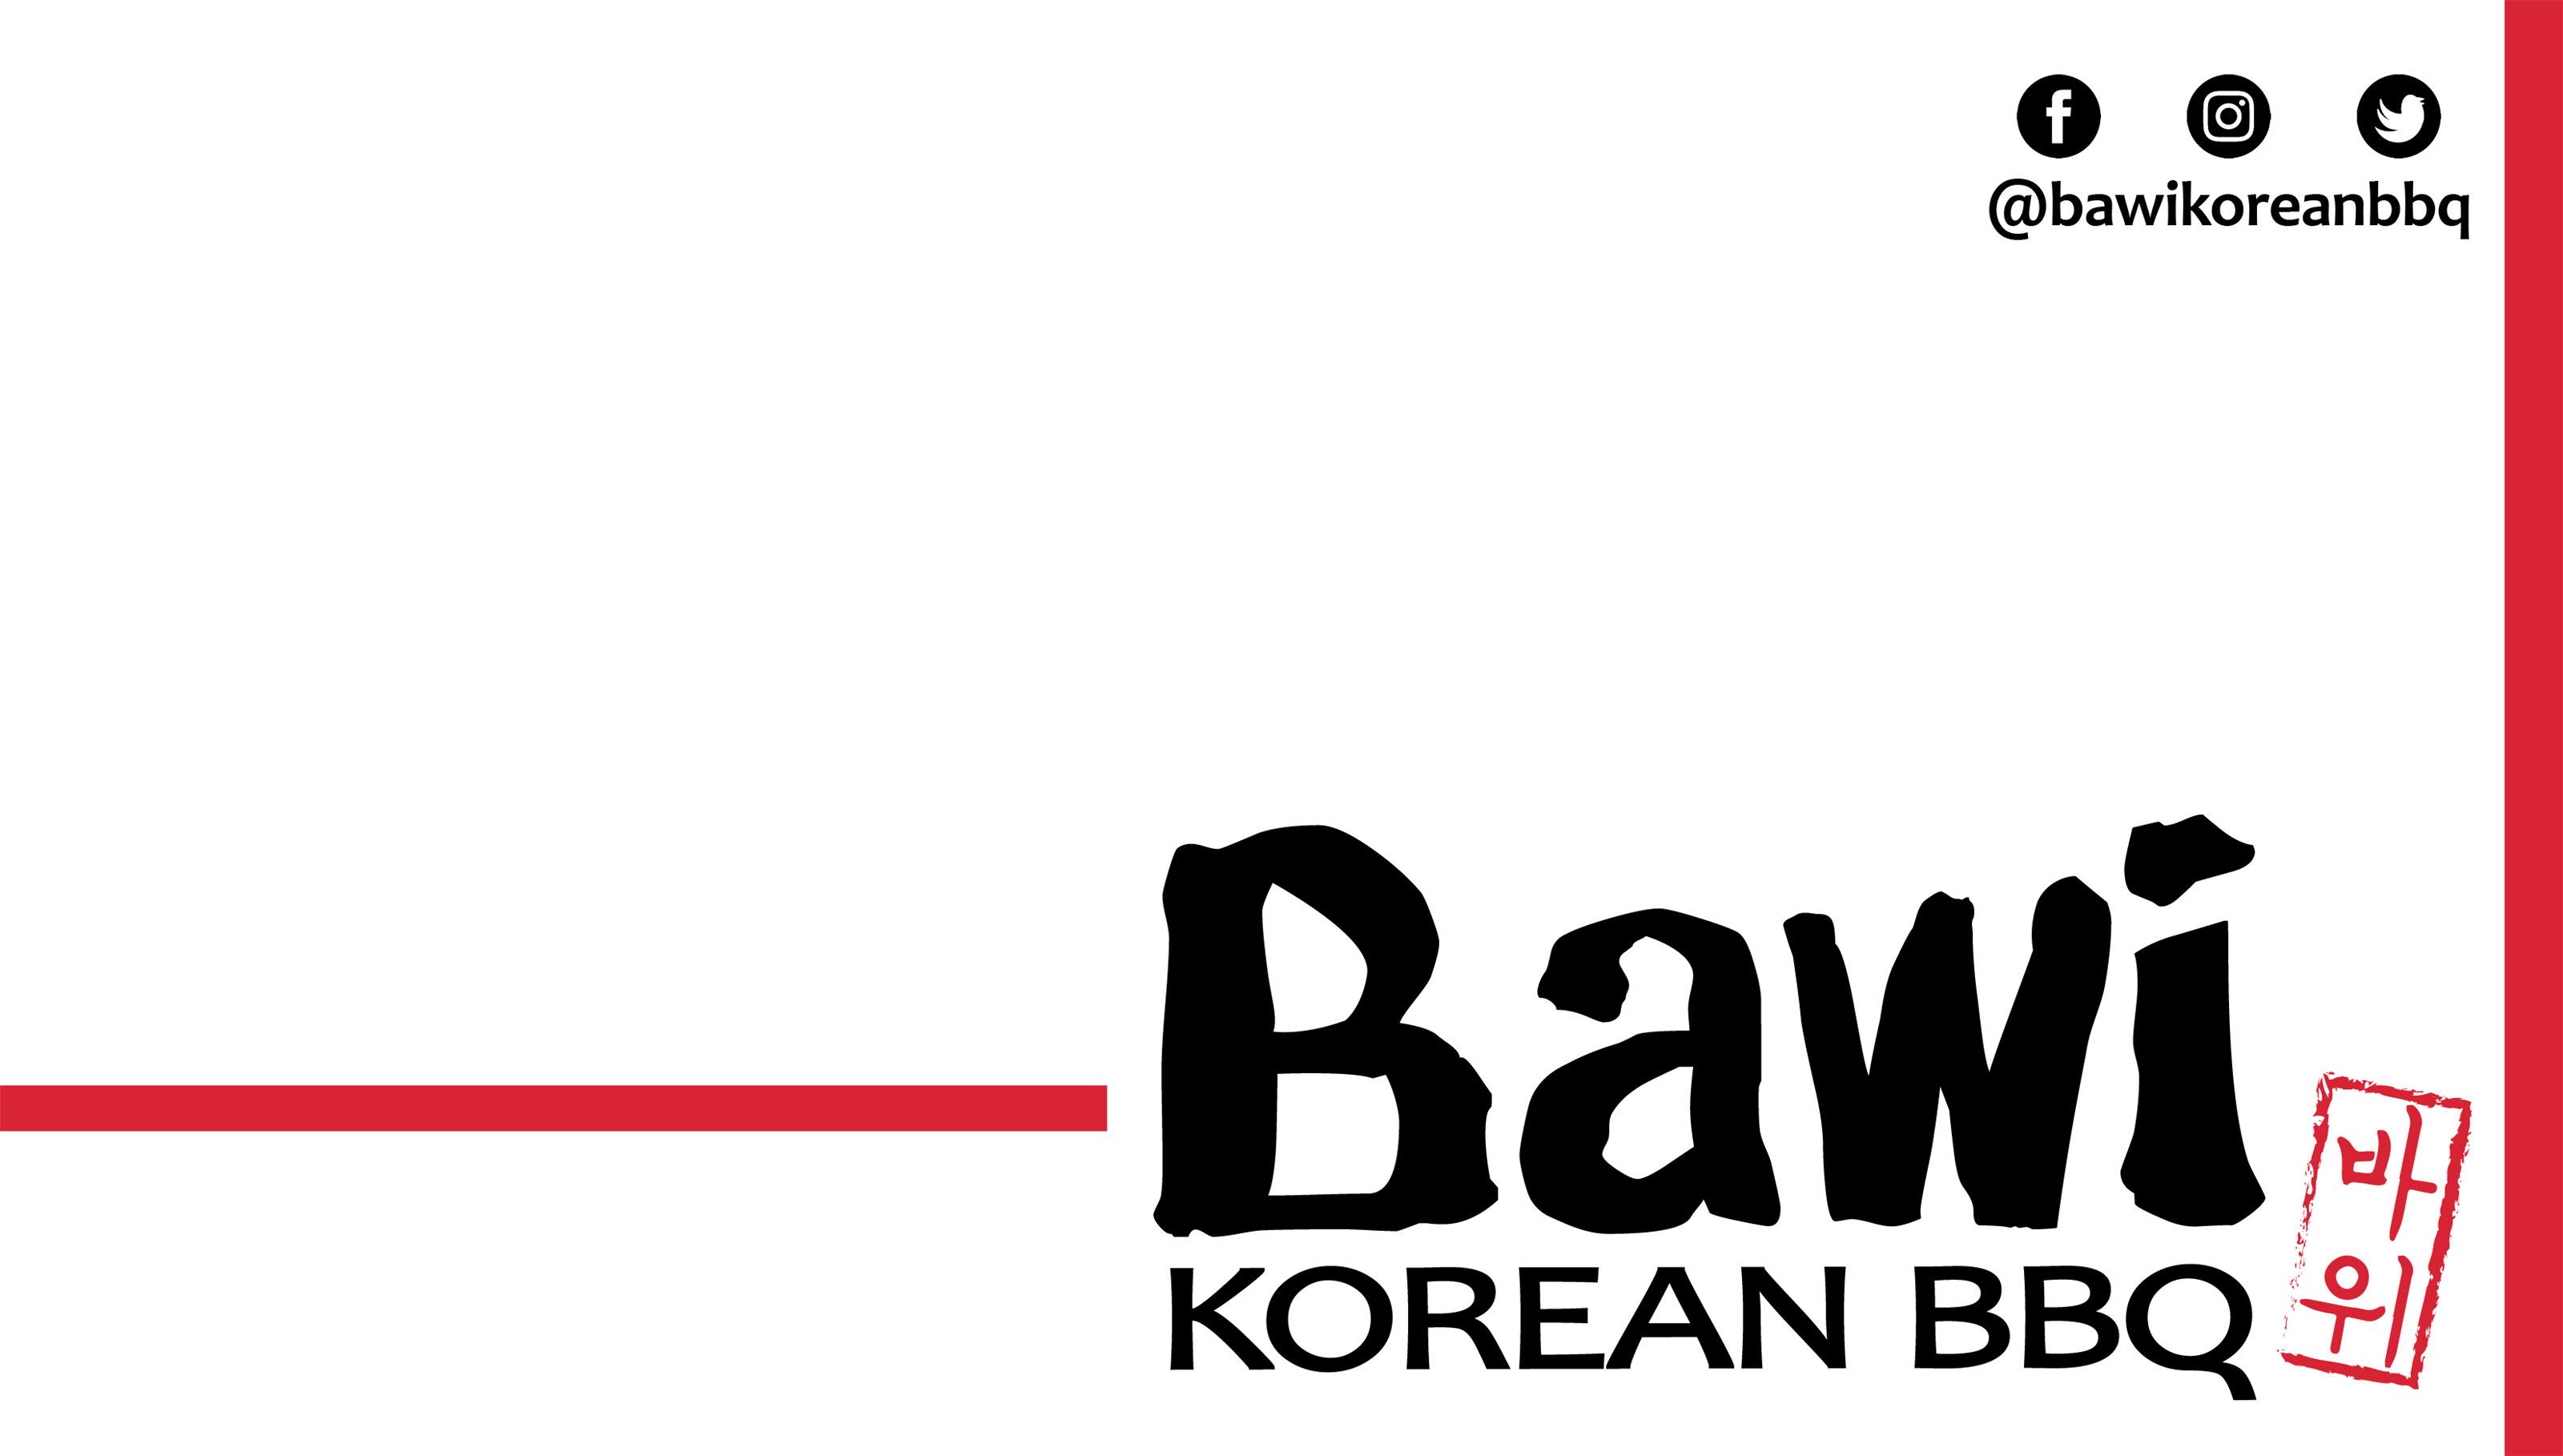 Bawi Korean BBQ All You Can Eat Menu